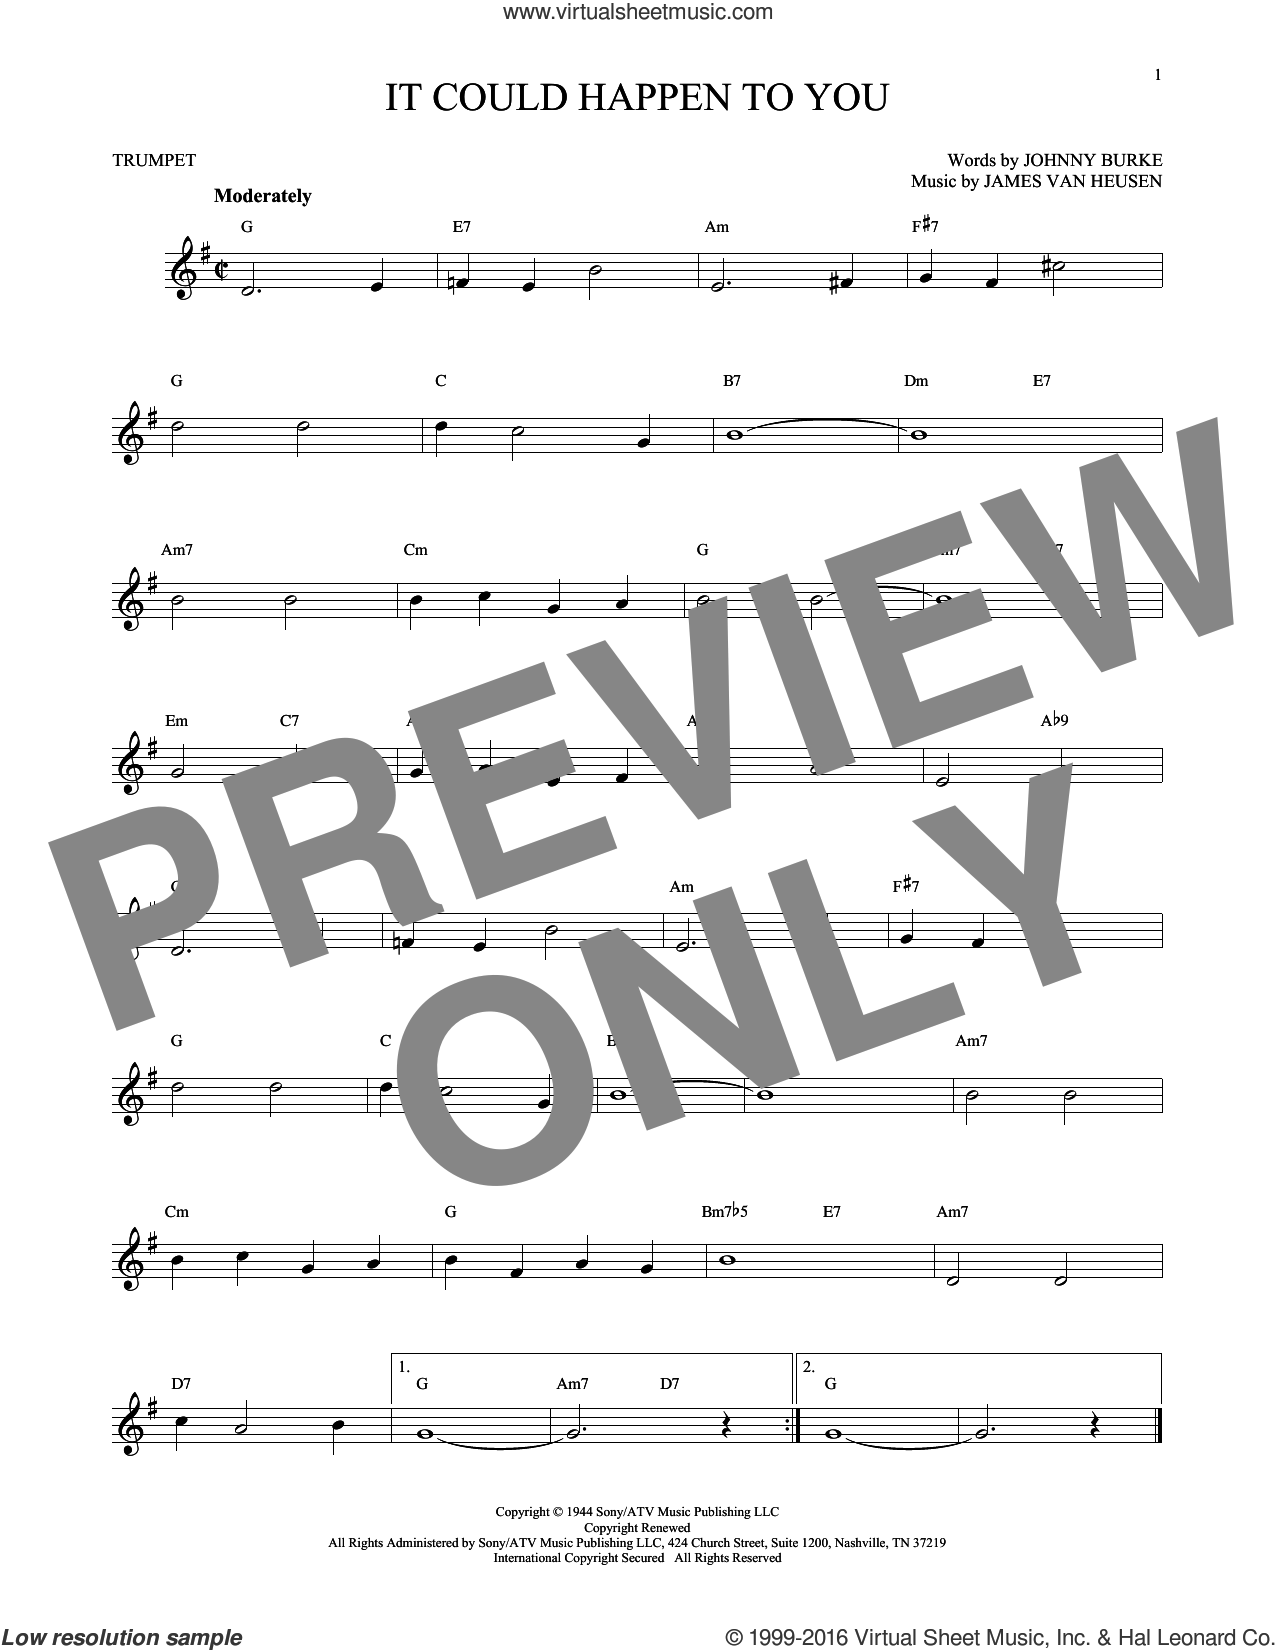 It Could Happen To You sheet music for trumpet solo by Jimmy van Heusen, June Christy and John Burke, intermediate. Score Image Preview.